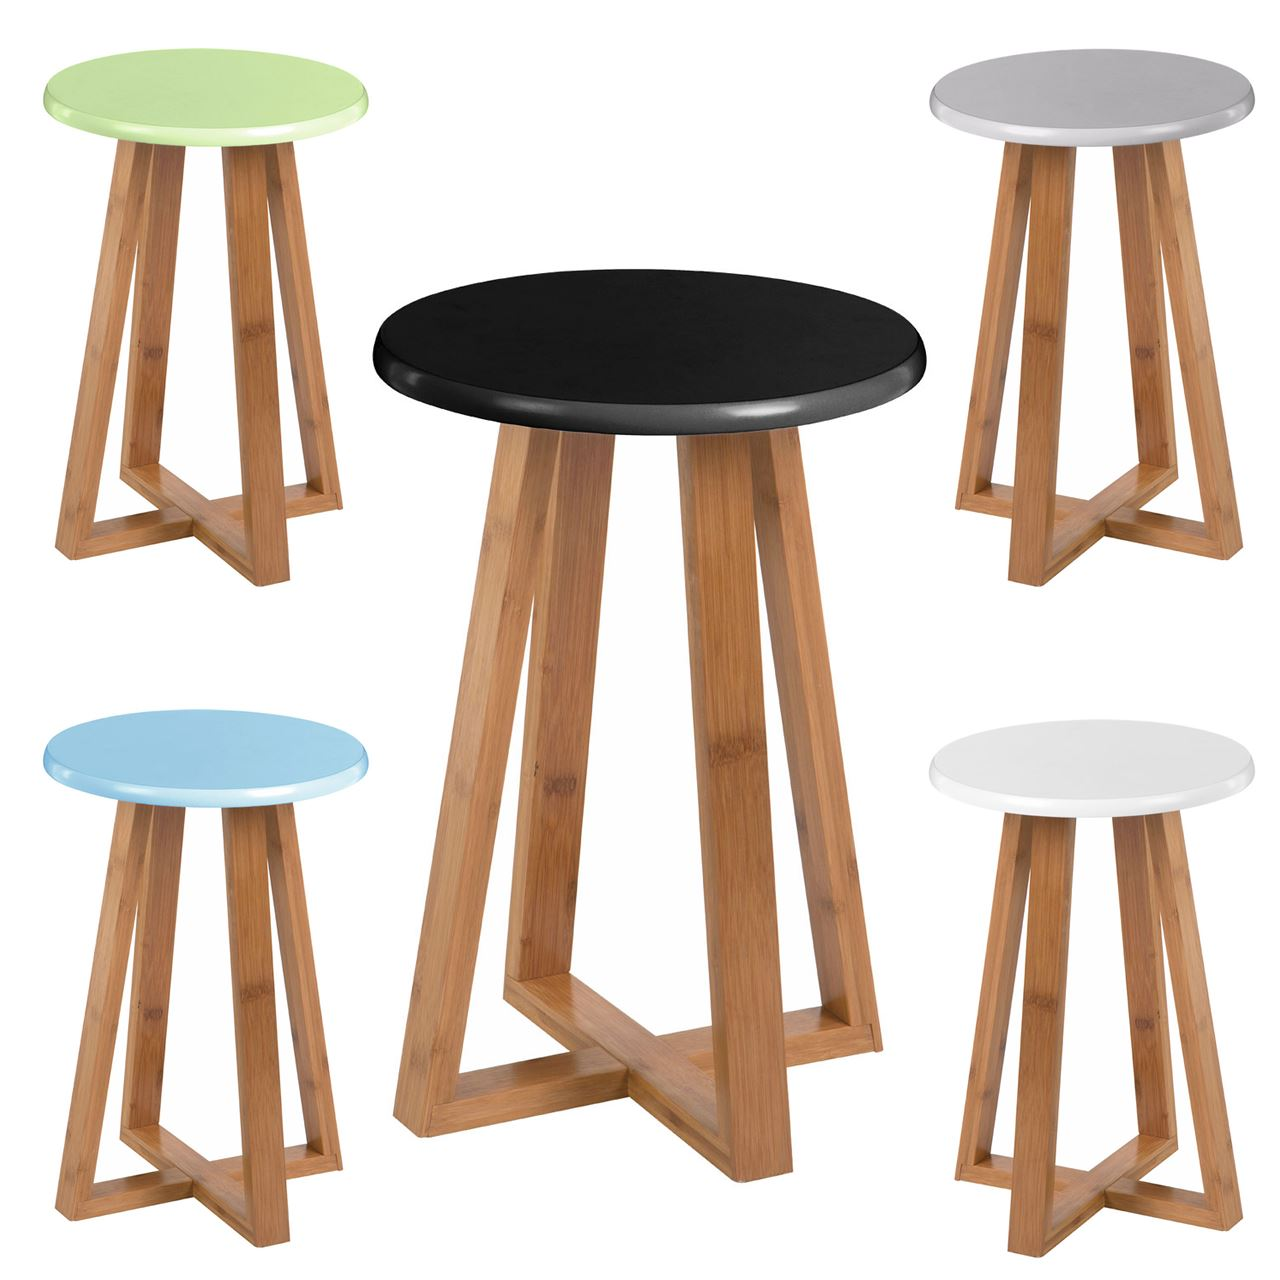 Viborg Round Stool / Bamboo Wood Base Legs / Breakfast Bar Rest ...